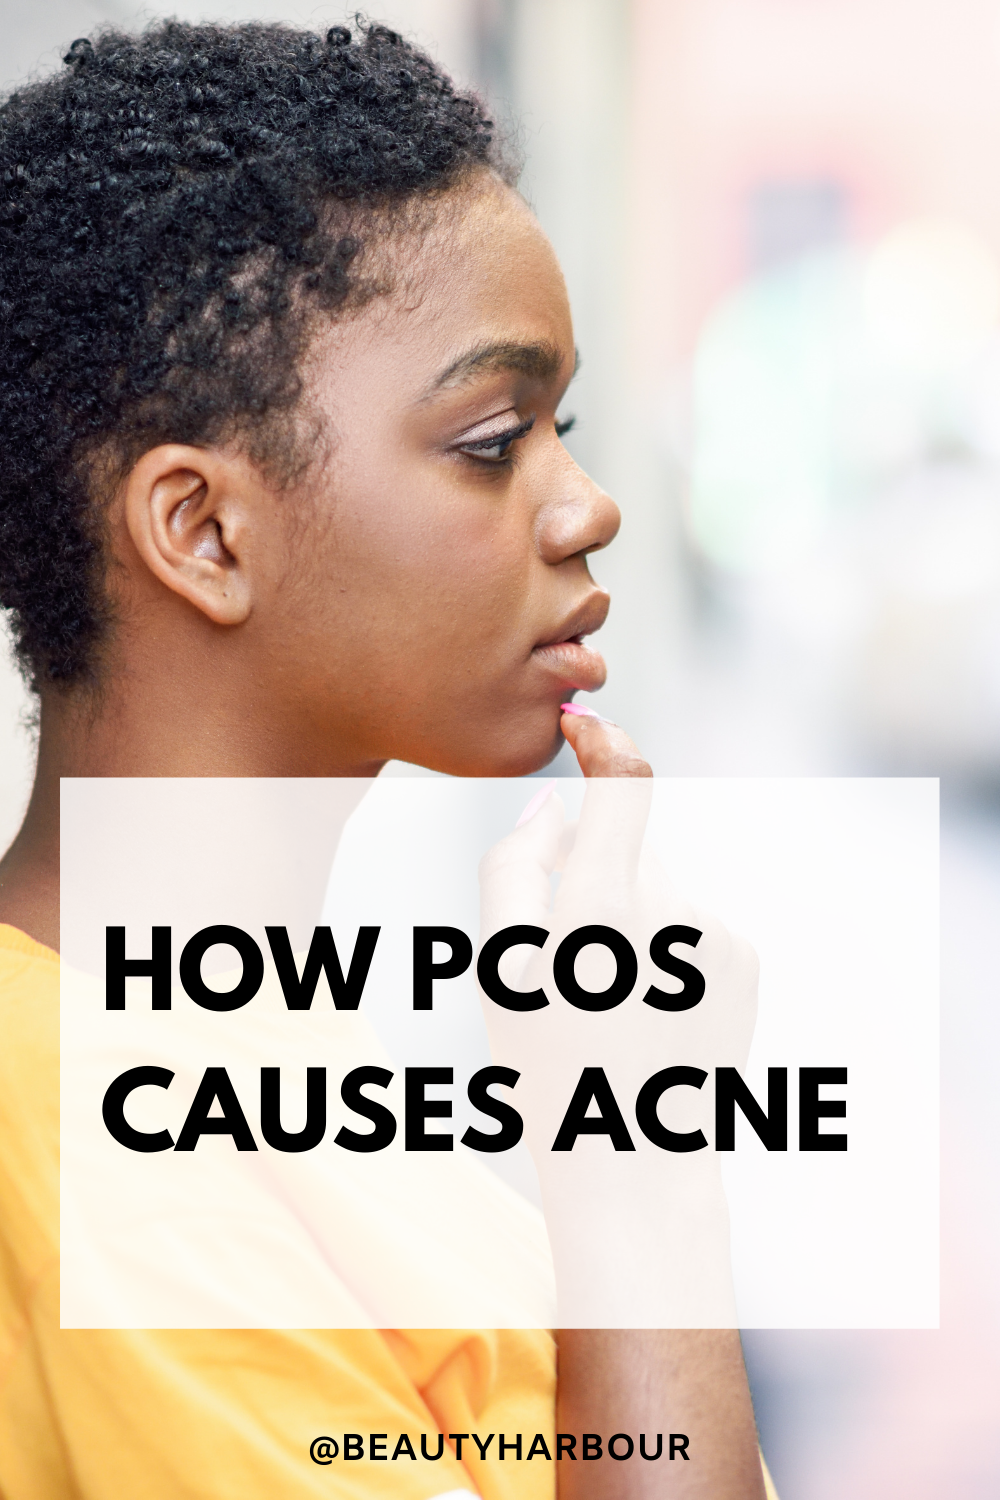 PCOS ,Polycystic ovarian syndrome and acne